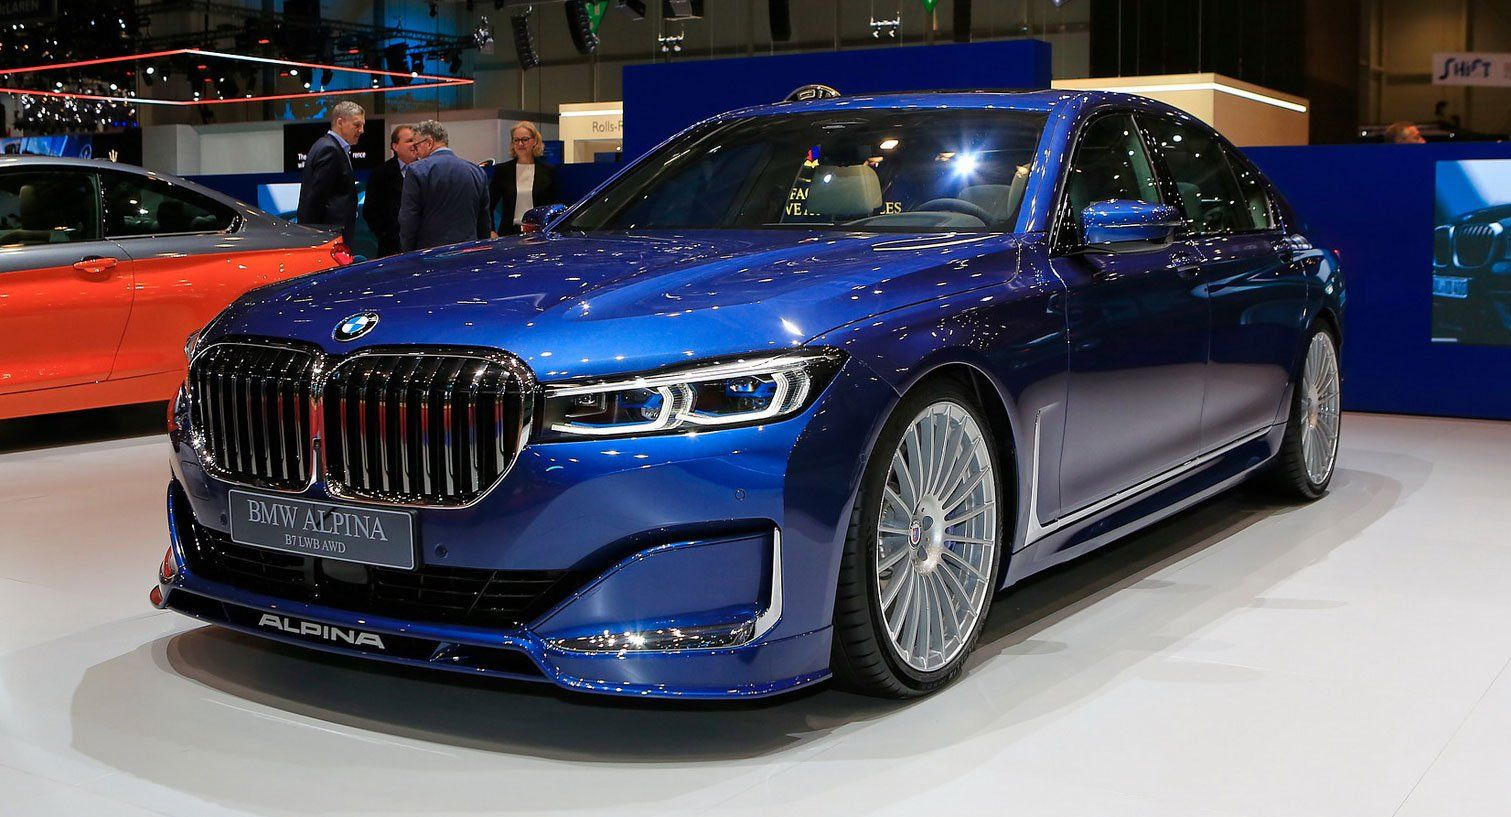 2020 Alpina B7 xDrive A Super Limo With 600 HP And A